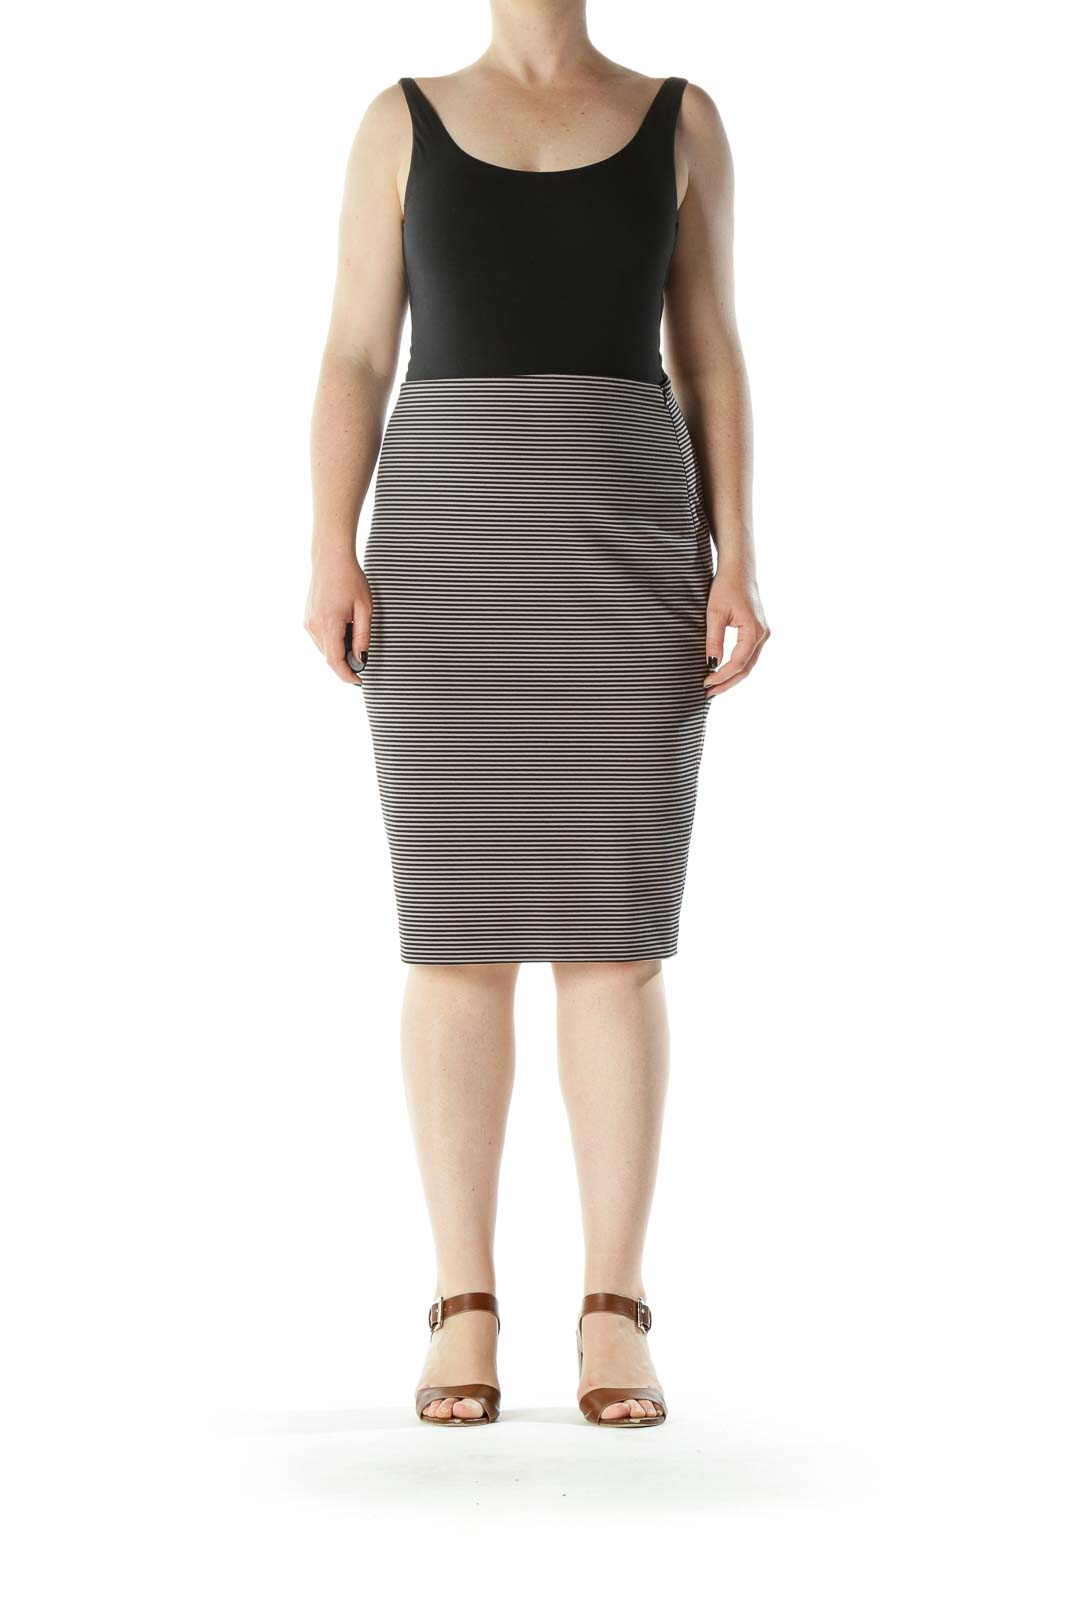 Beige Black Striped Stretch Side Zipper Pencil Skirt